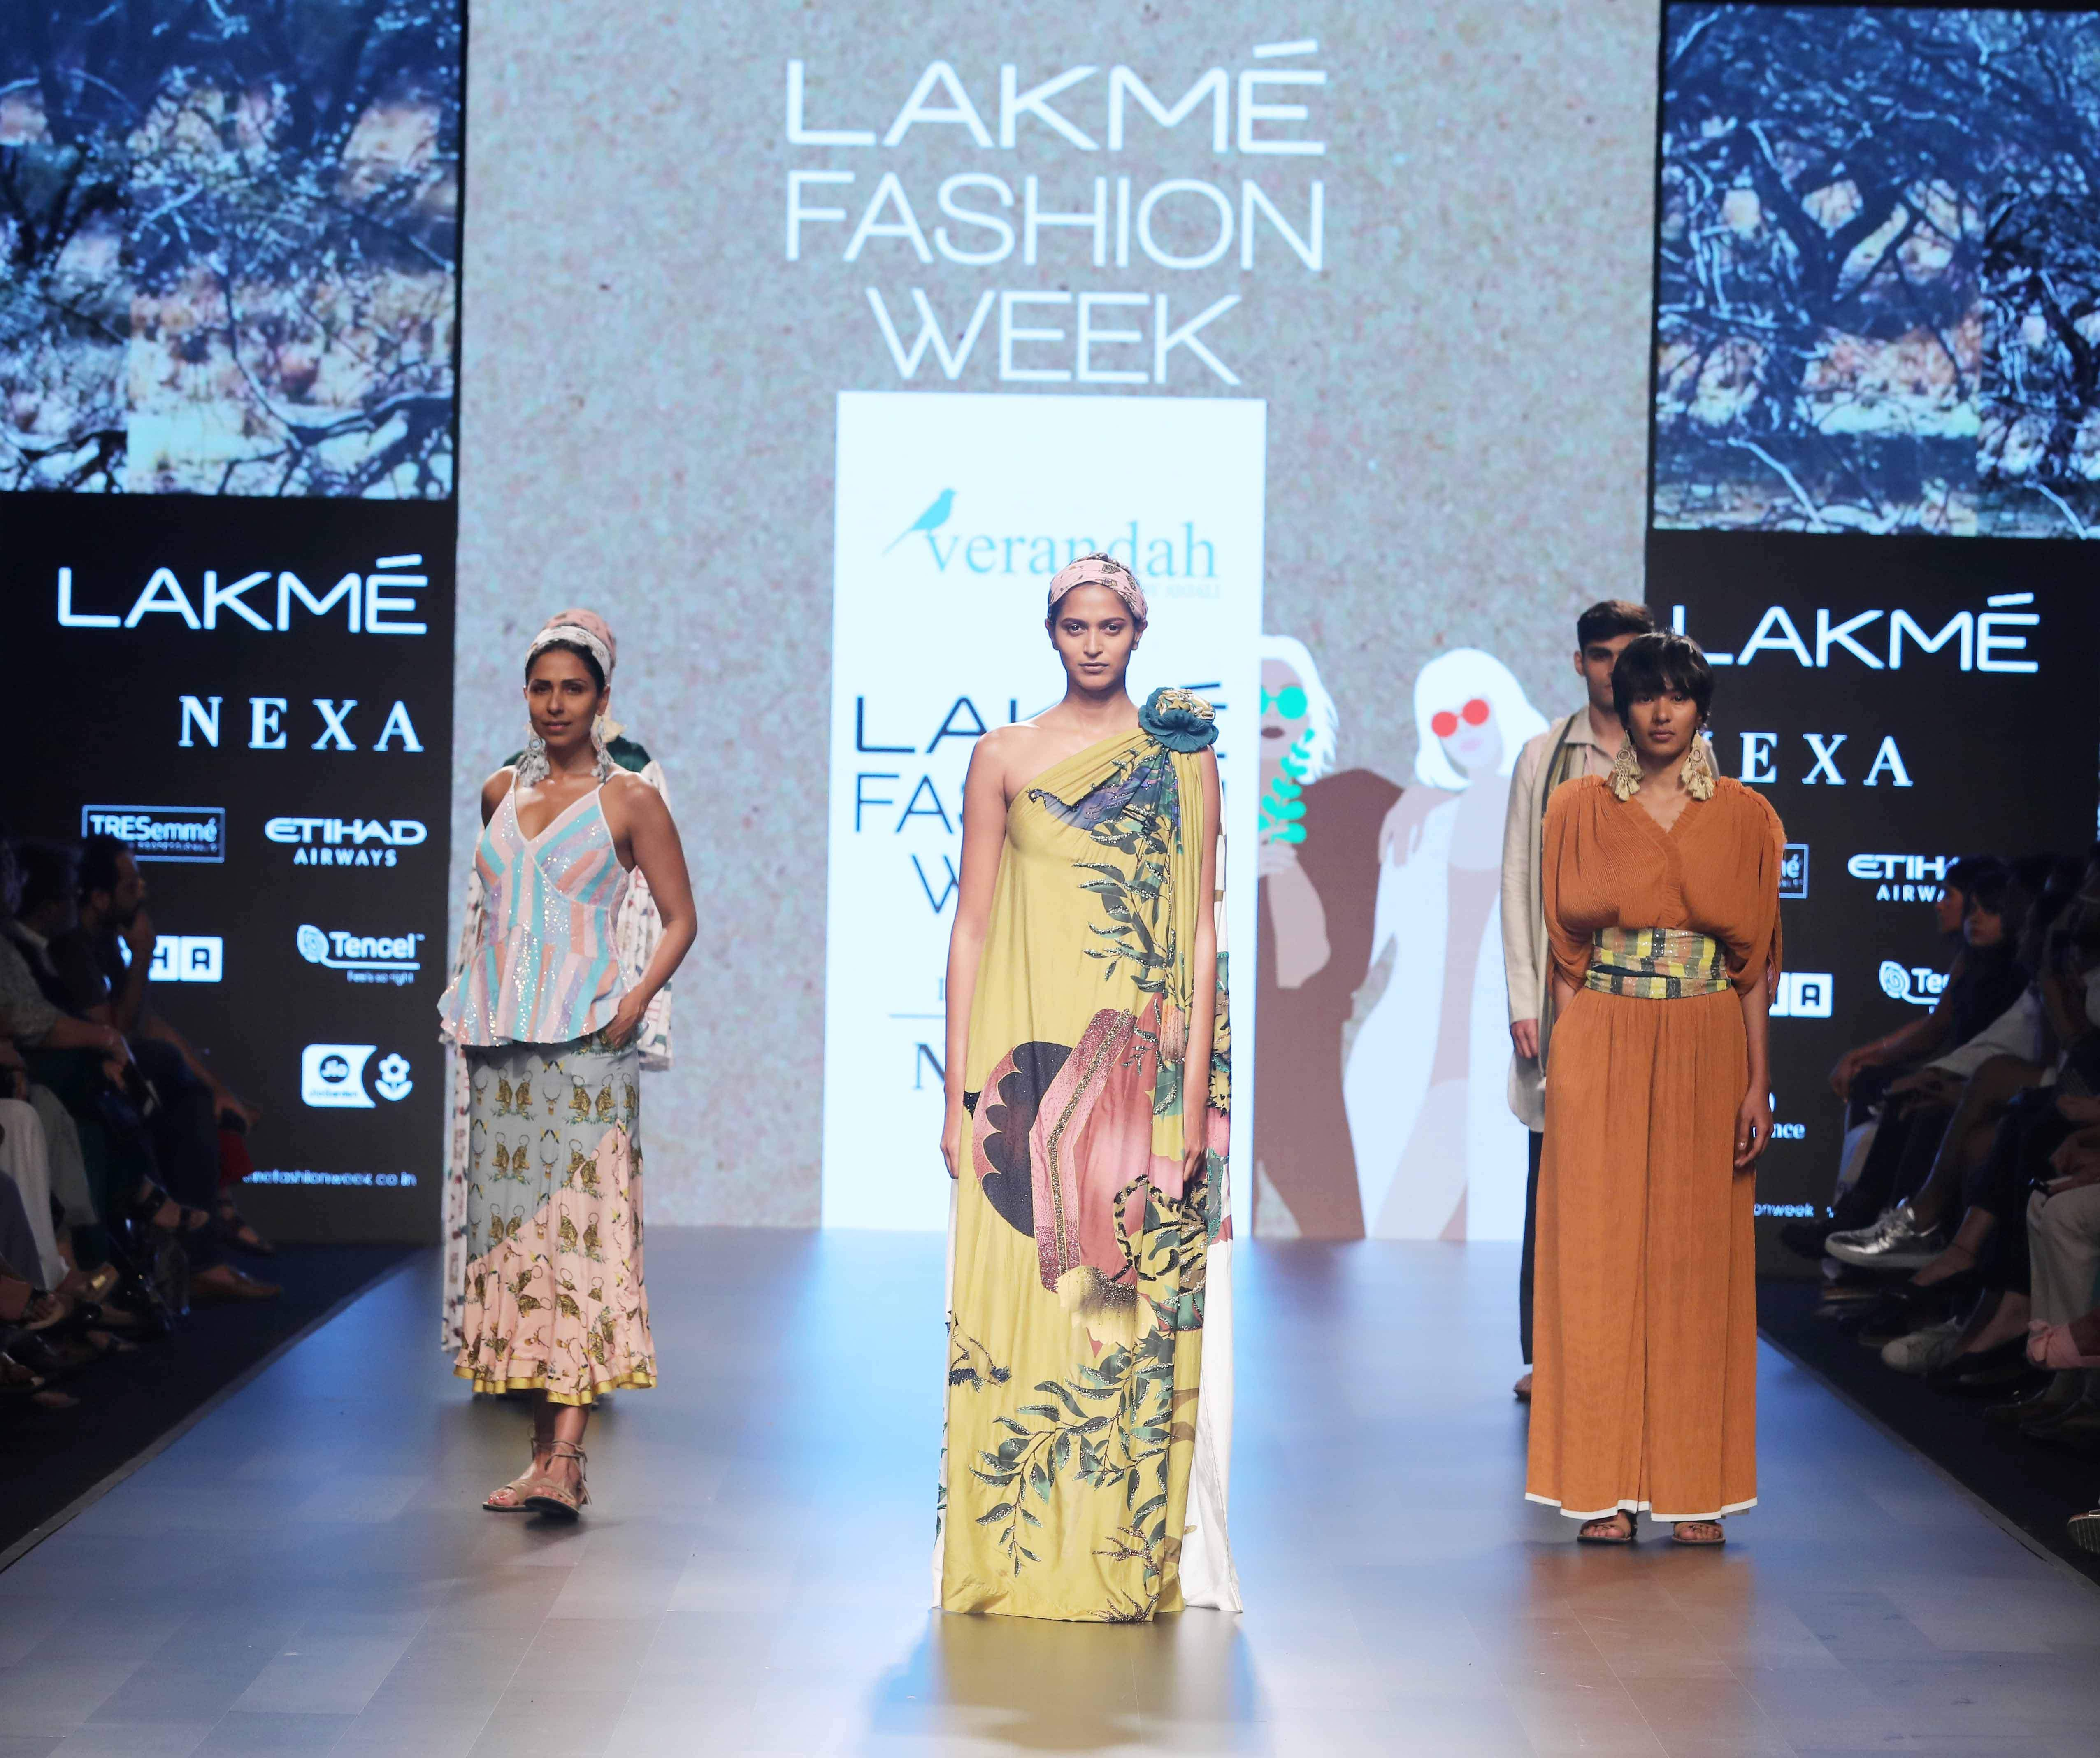 Lakme Fashion Week Summer Resort 2018: Trends and highlights of the